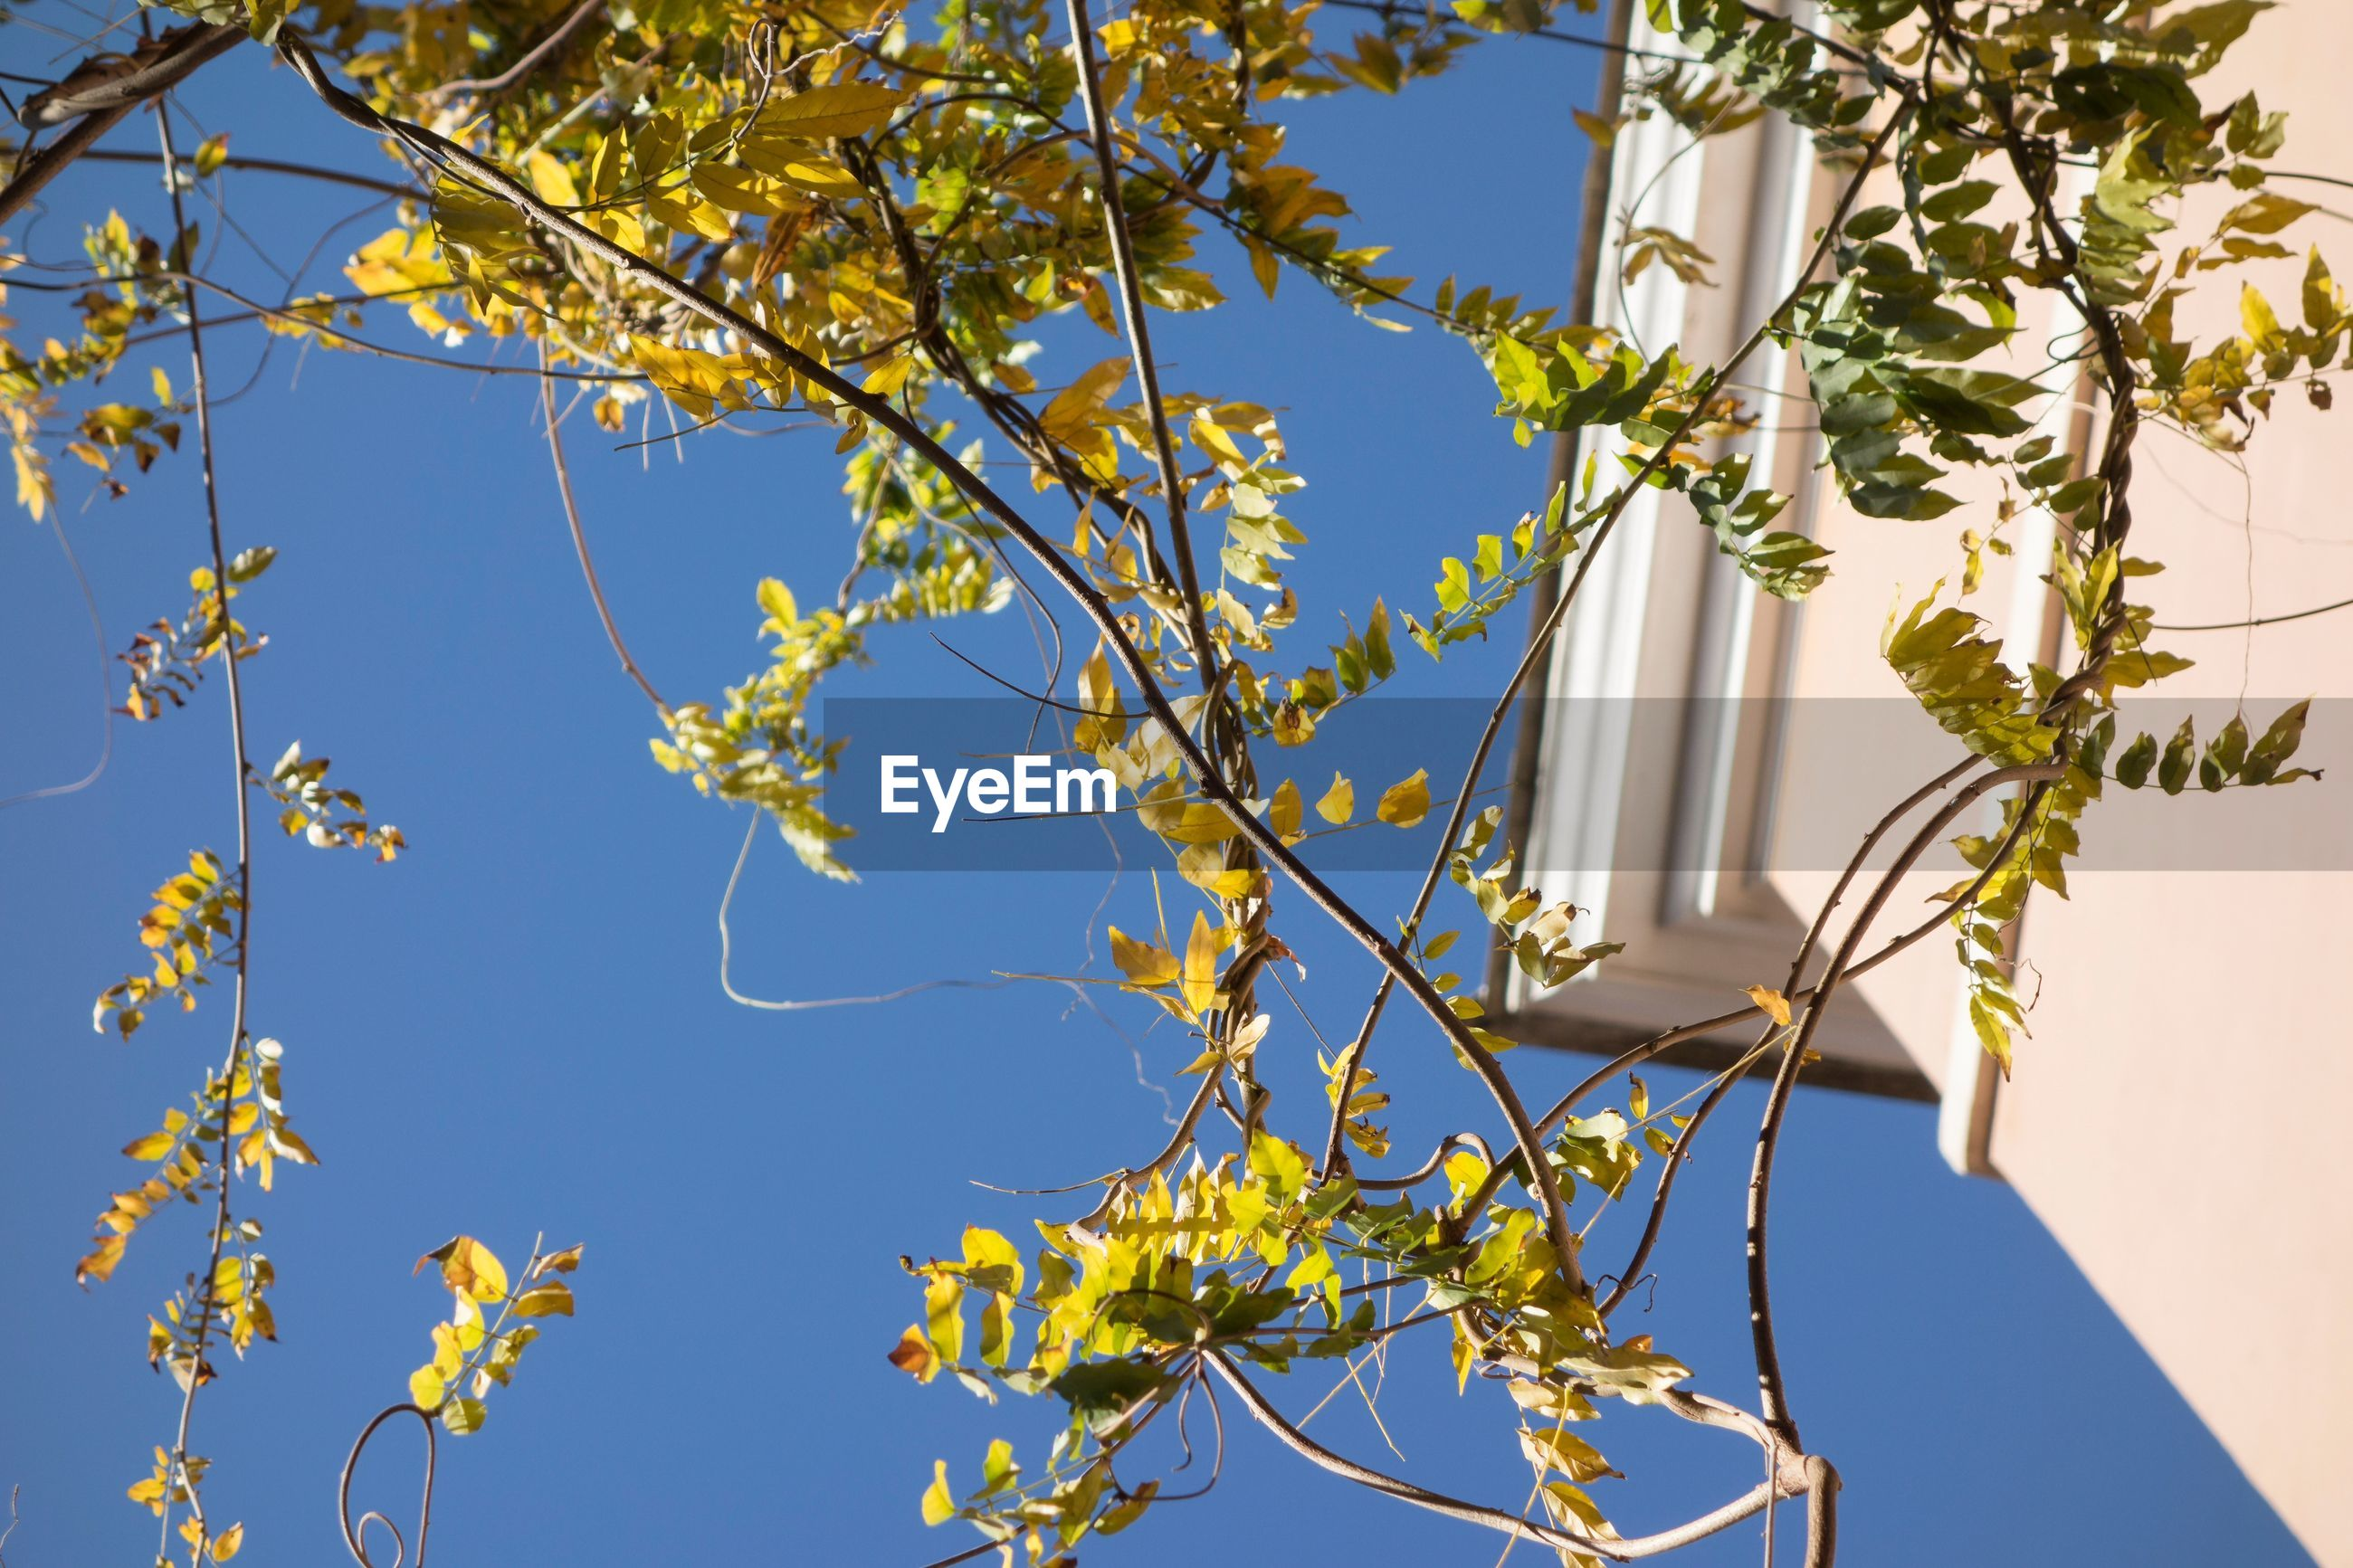 LOW ANGLE VIEW OF FLOWERING PLANTS AGAINST CLEAR SKY